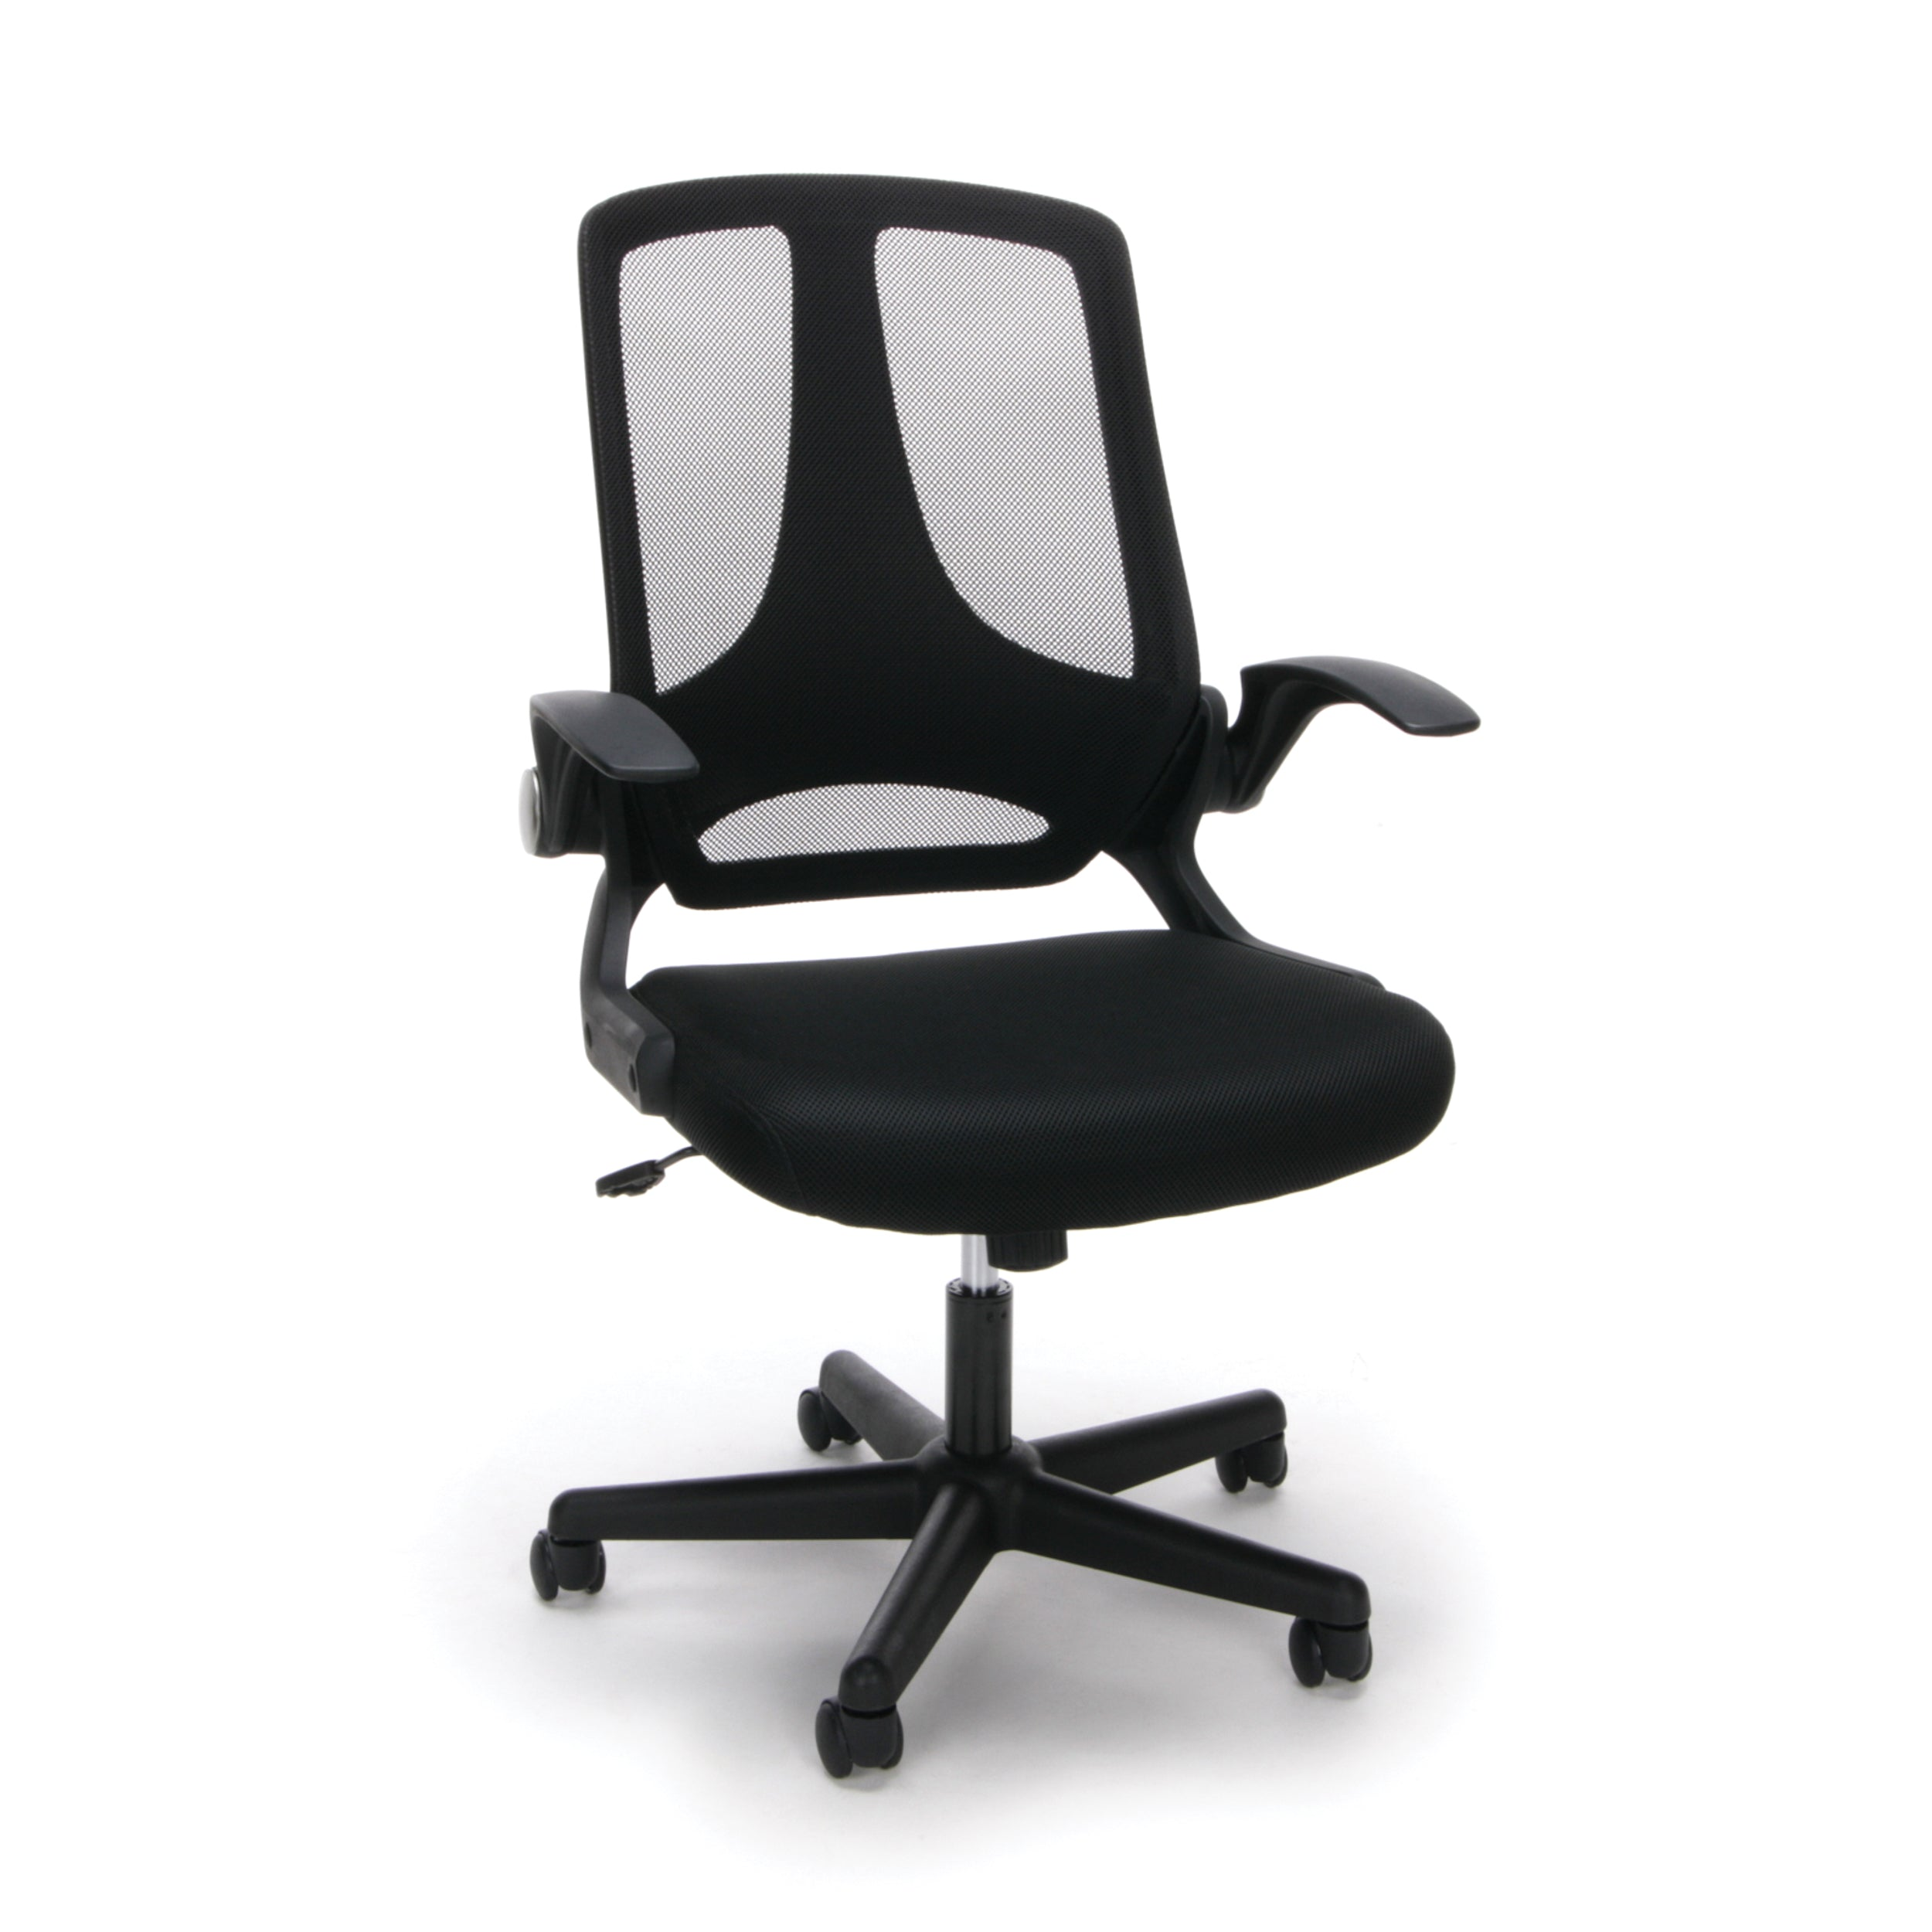 Model ESS-3045 Essentials Upholstered Flip-Arm Task Chair